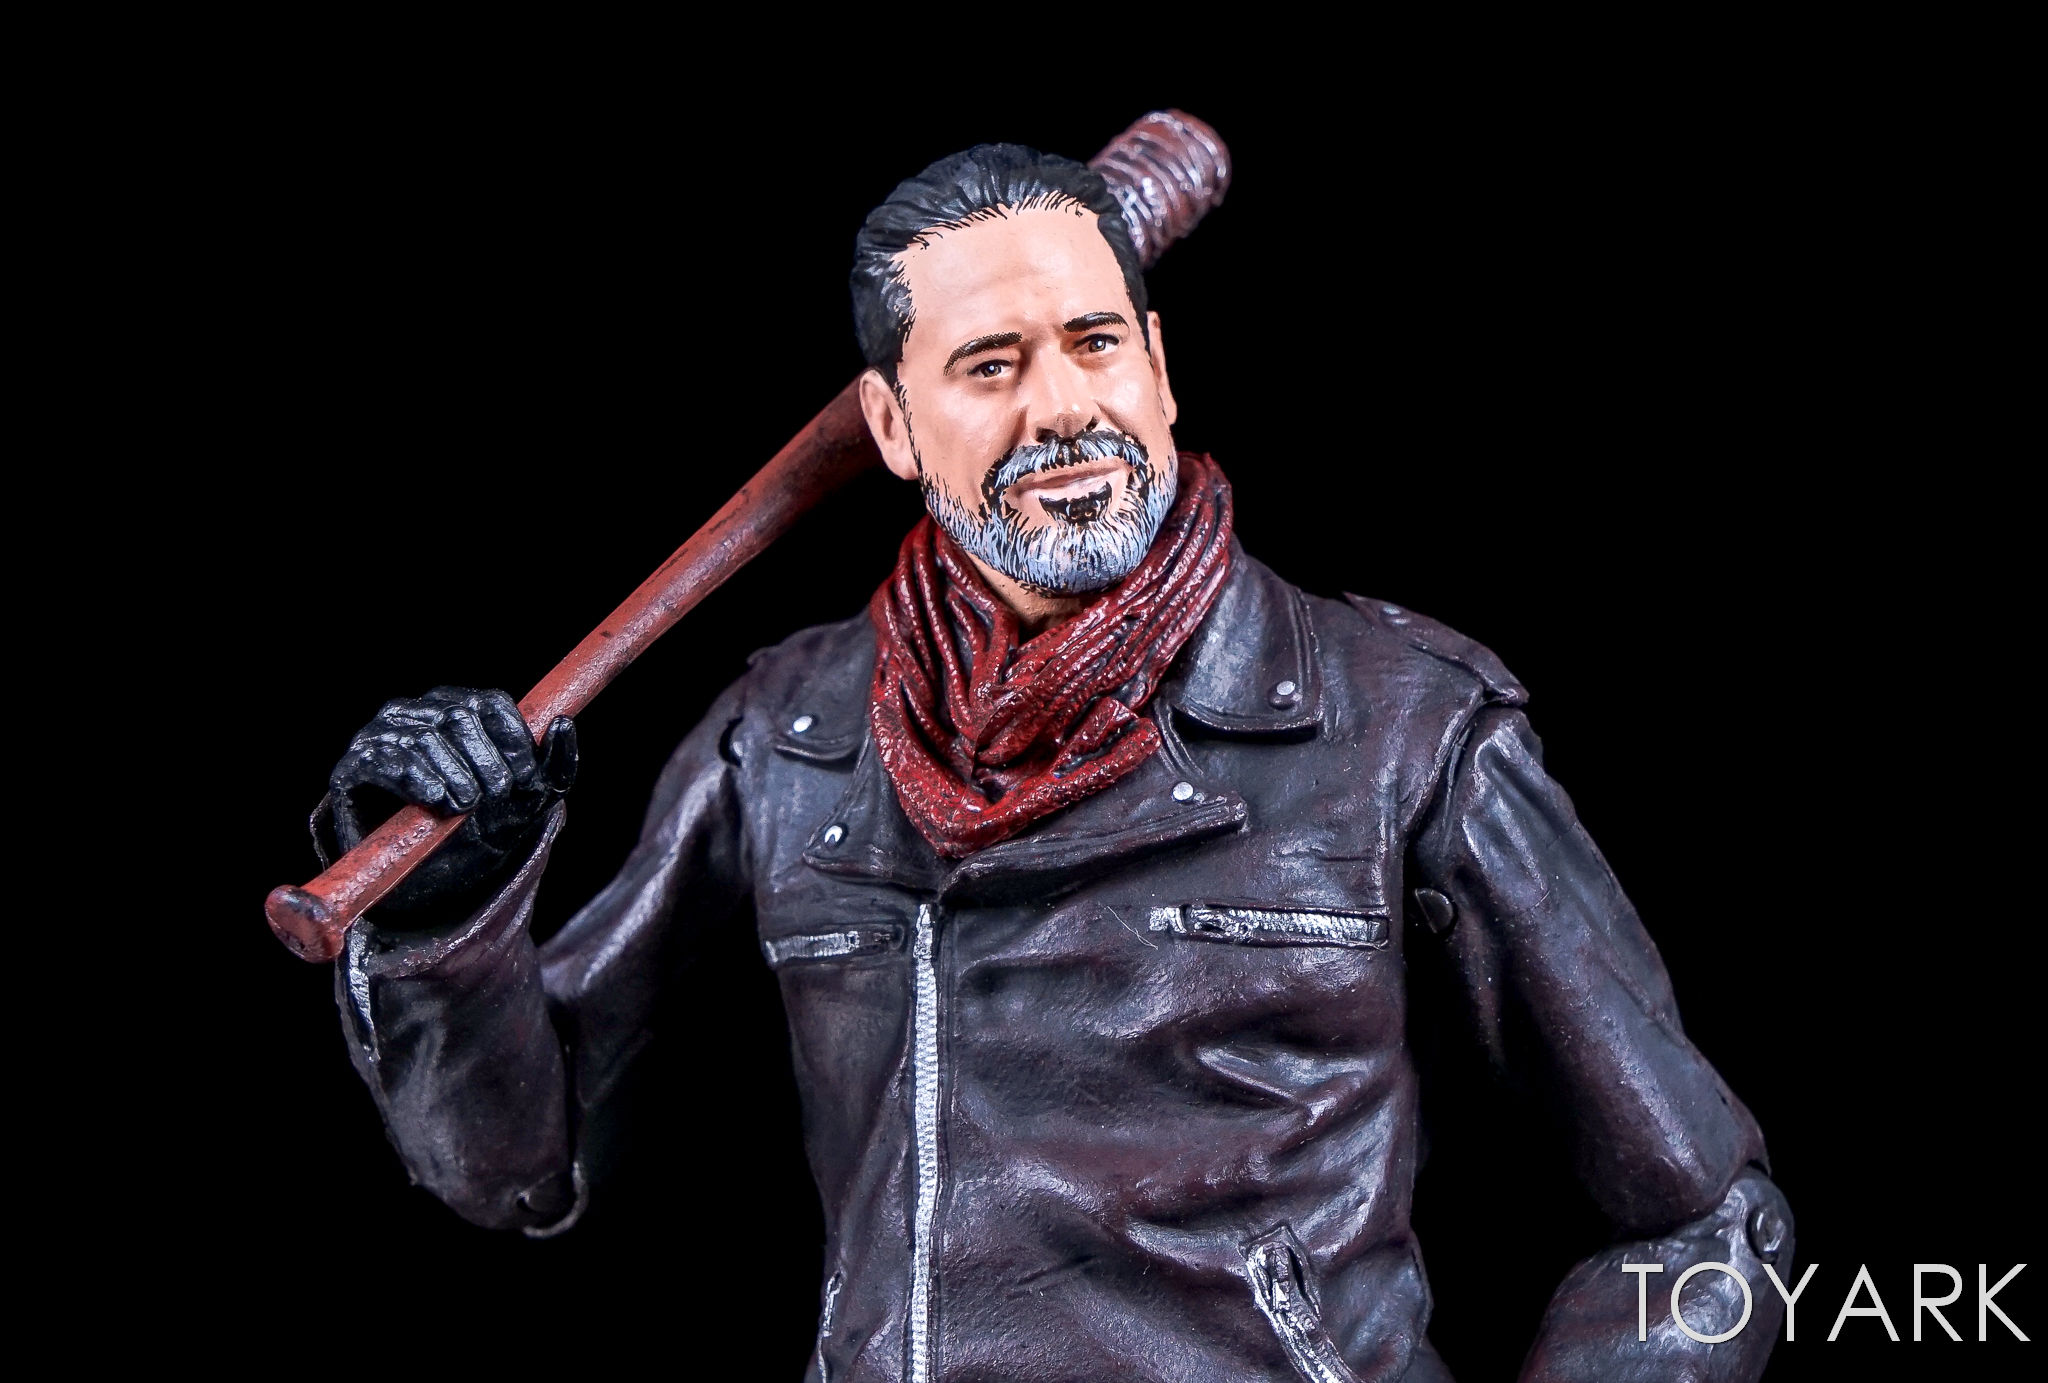 http://news.toyark.com/wp-content/uploads/sites/4/2017/05/McFarlane-Walking-Dead-Negan-013.jpg